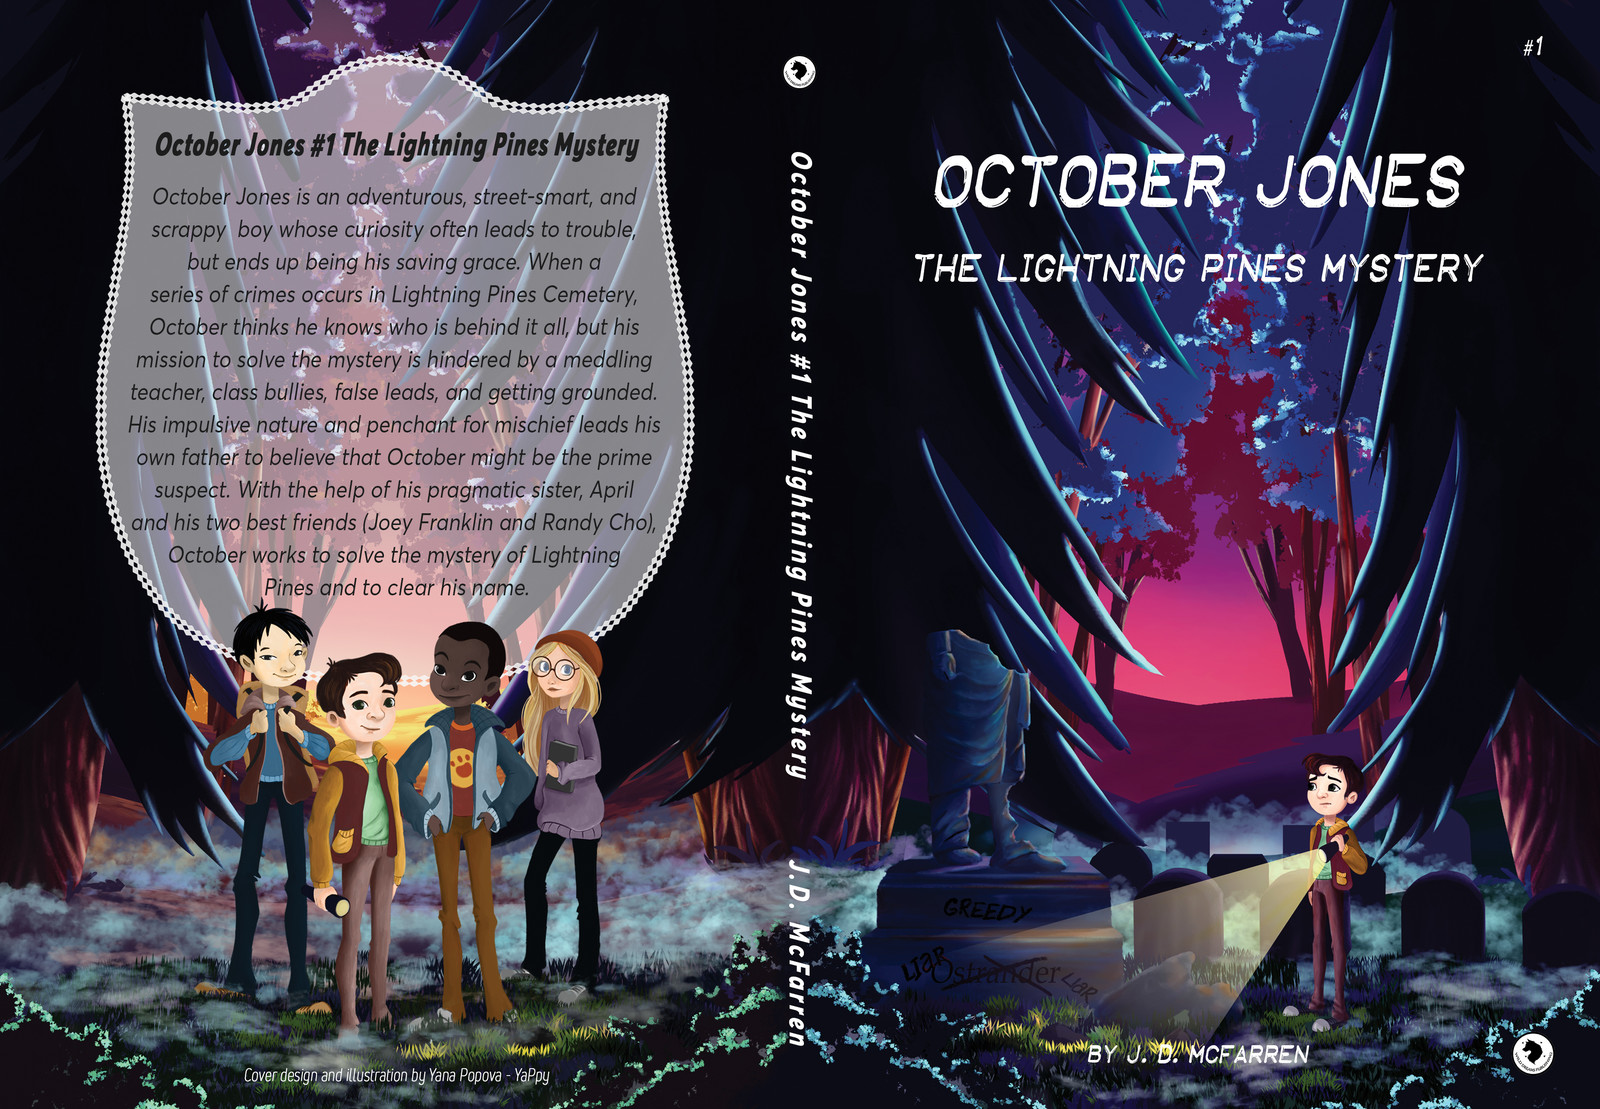 October Jones The Lightning Pines Mystery book cover